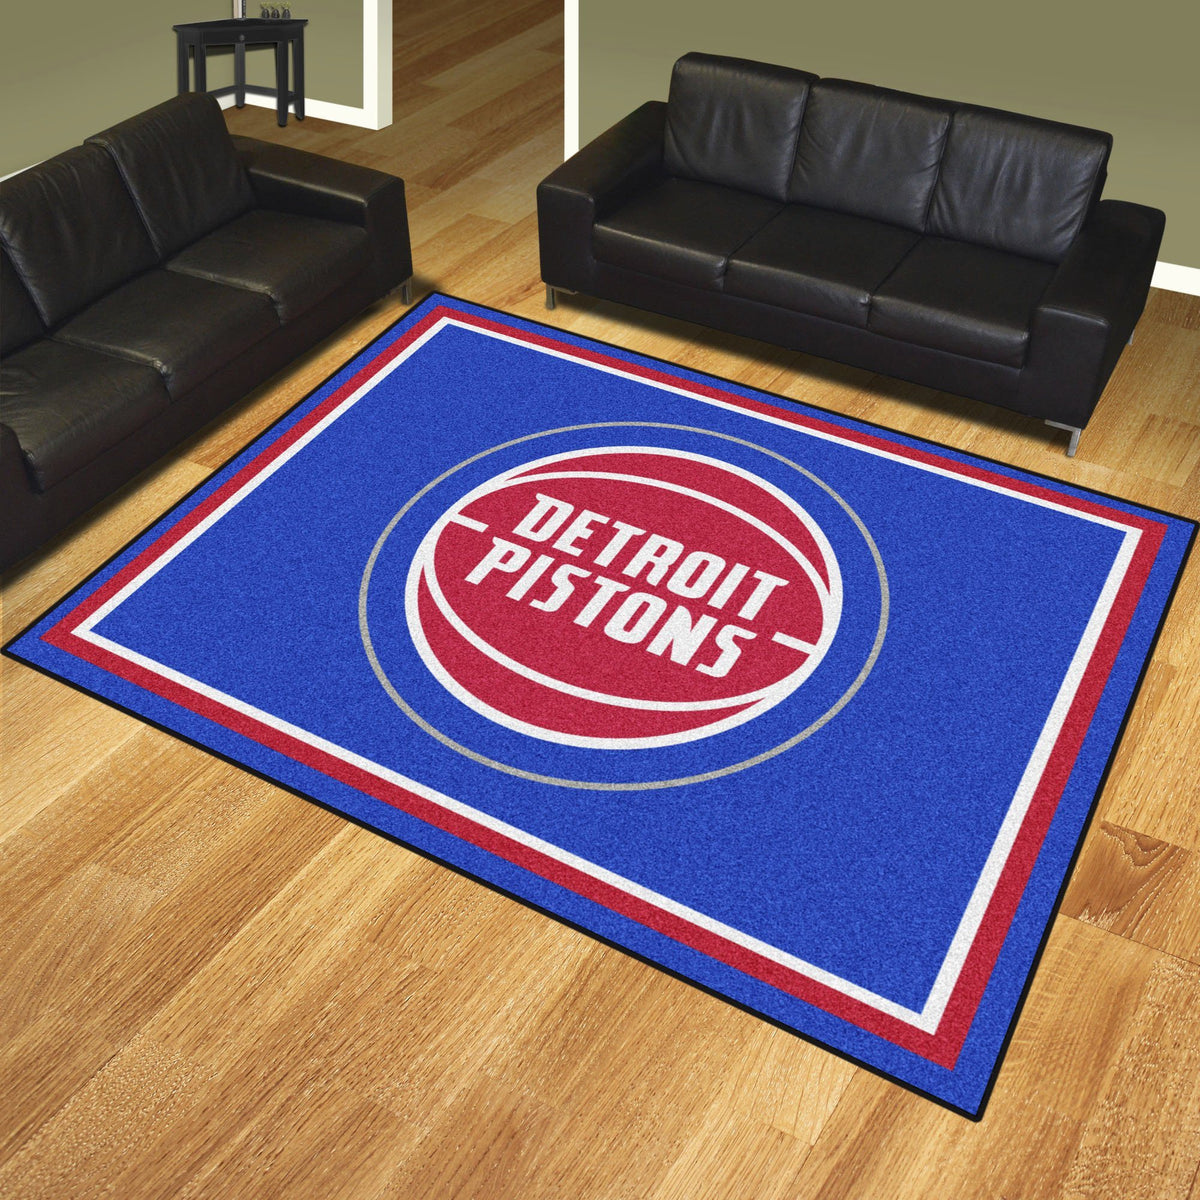 NBA - 8' x 10' Rug NBA Mats, Plush Rugs, 8x10 Rug, NBA, Home Fan Mats Detroit Pistons